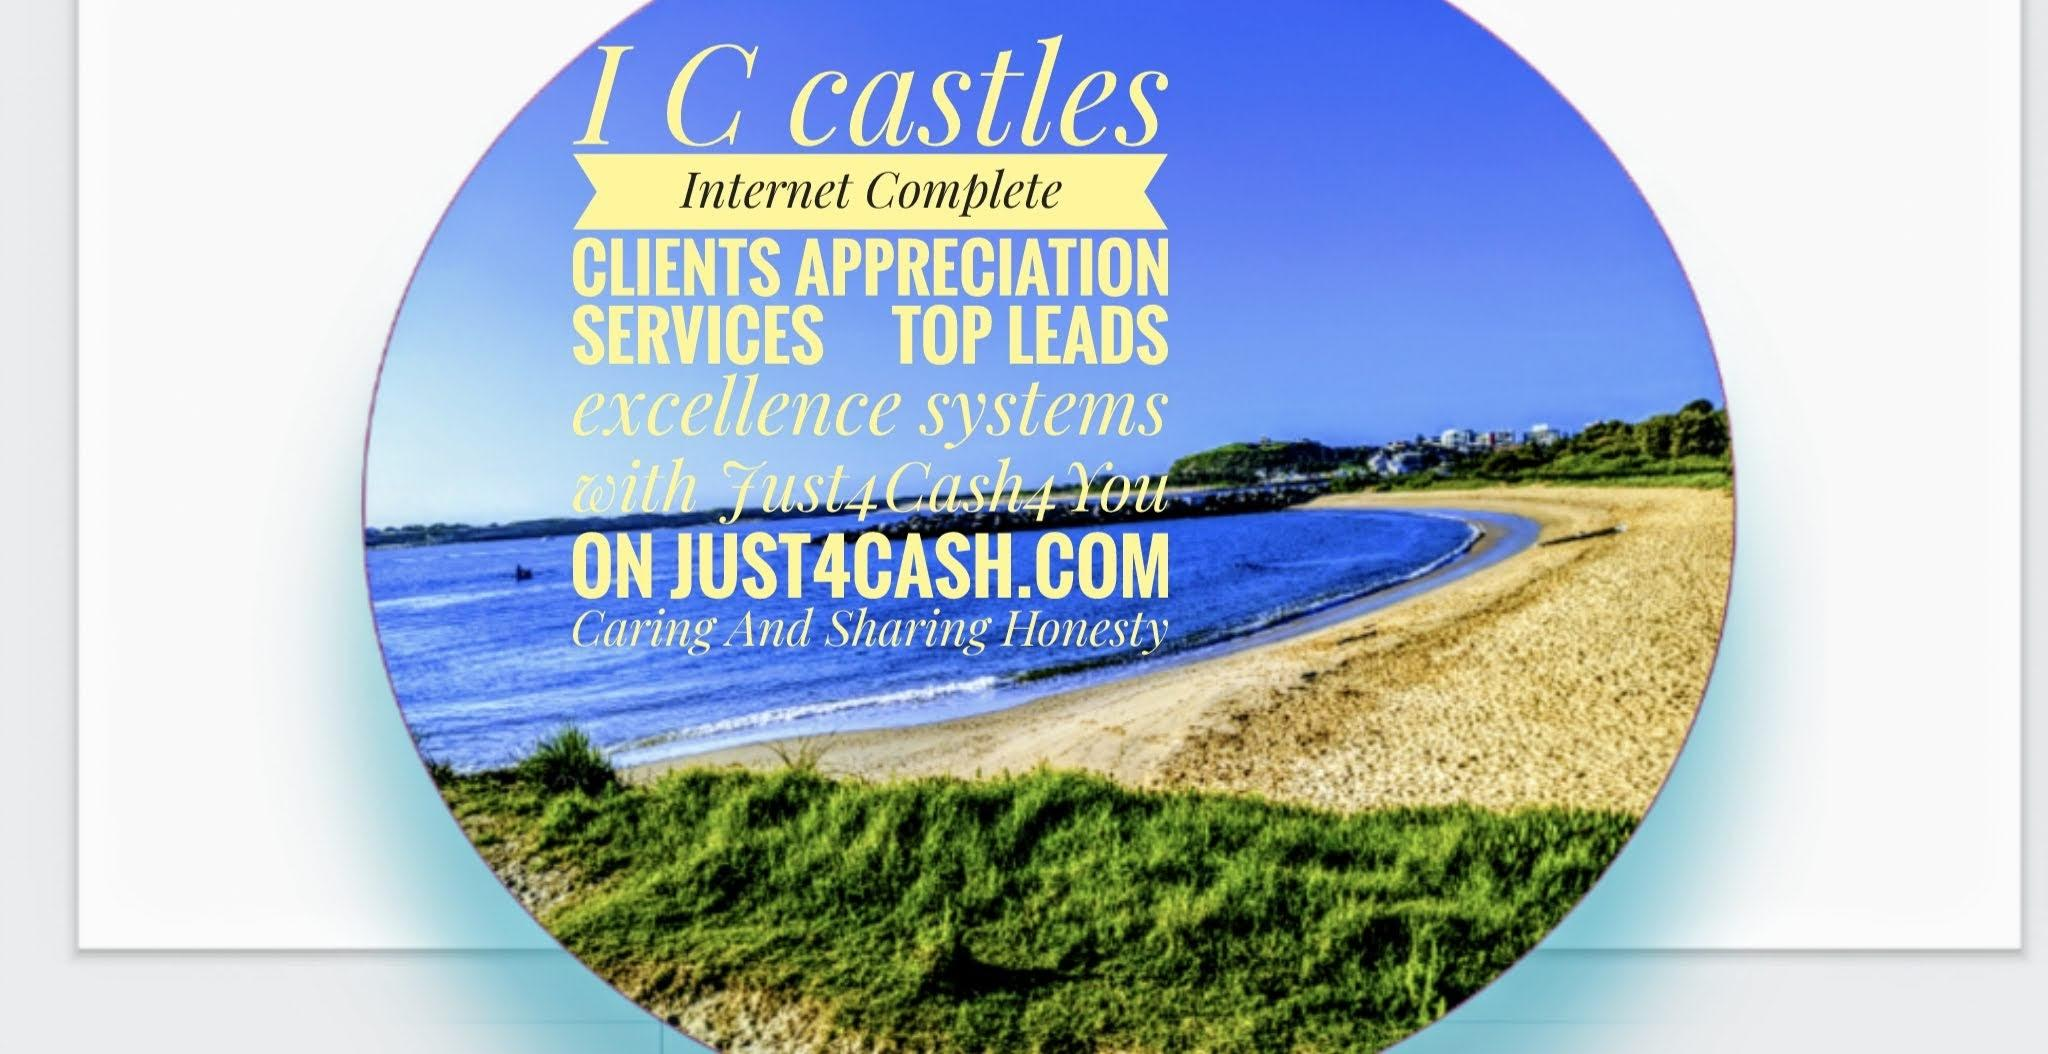 just4cash4you.com on just4cash.com